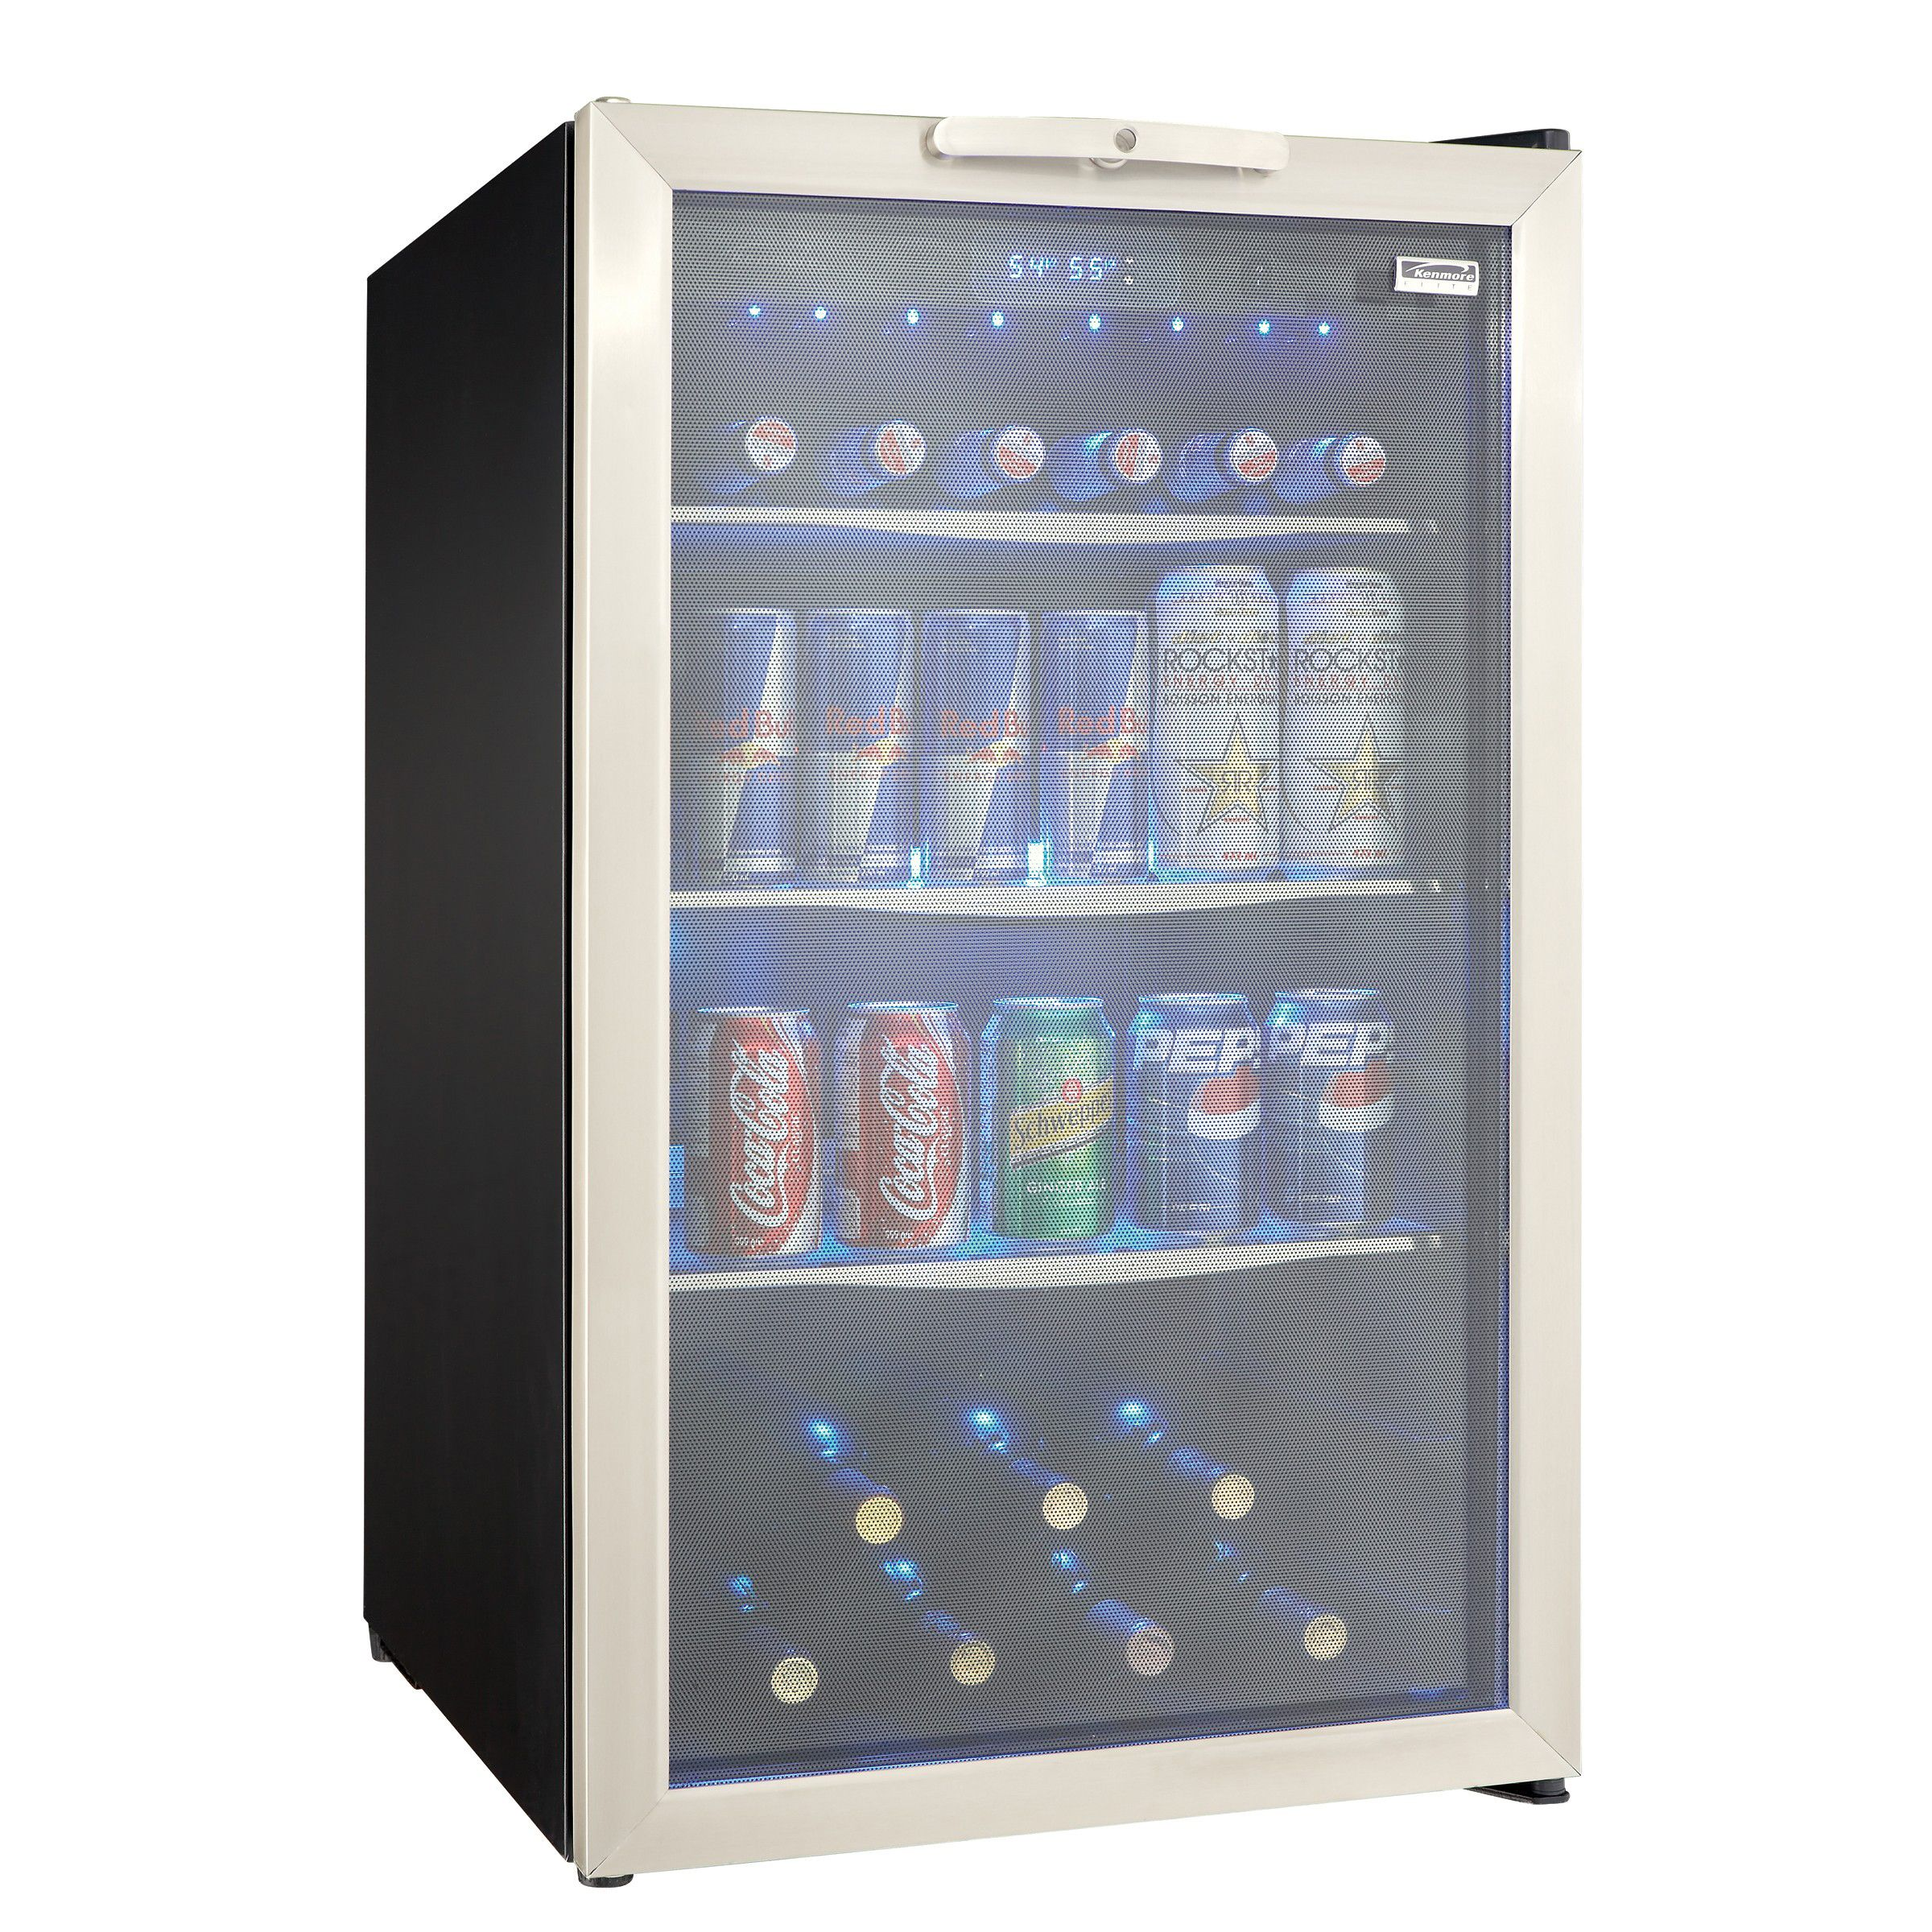 Kenmore Compact Refrigerator 126-Can Beverage Center (9910)